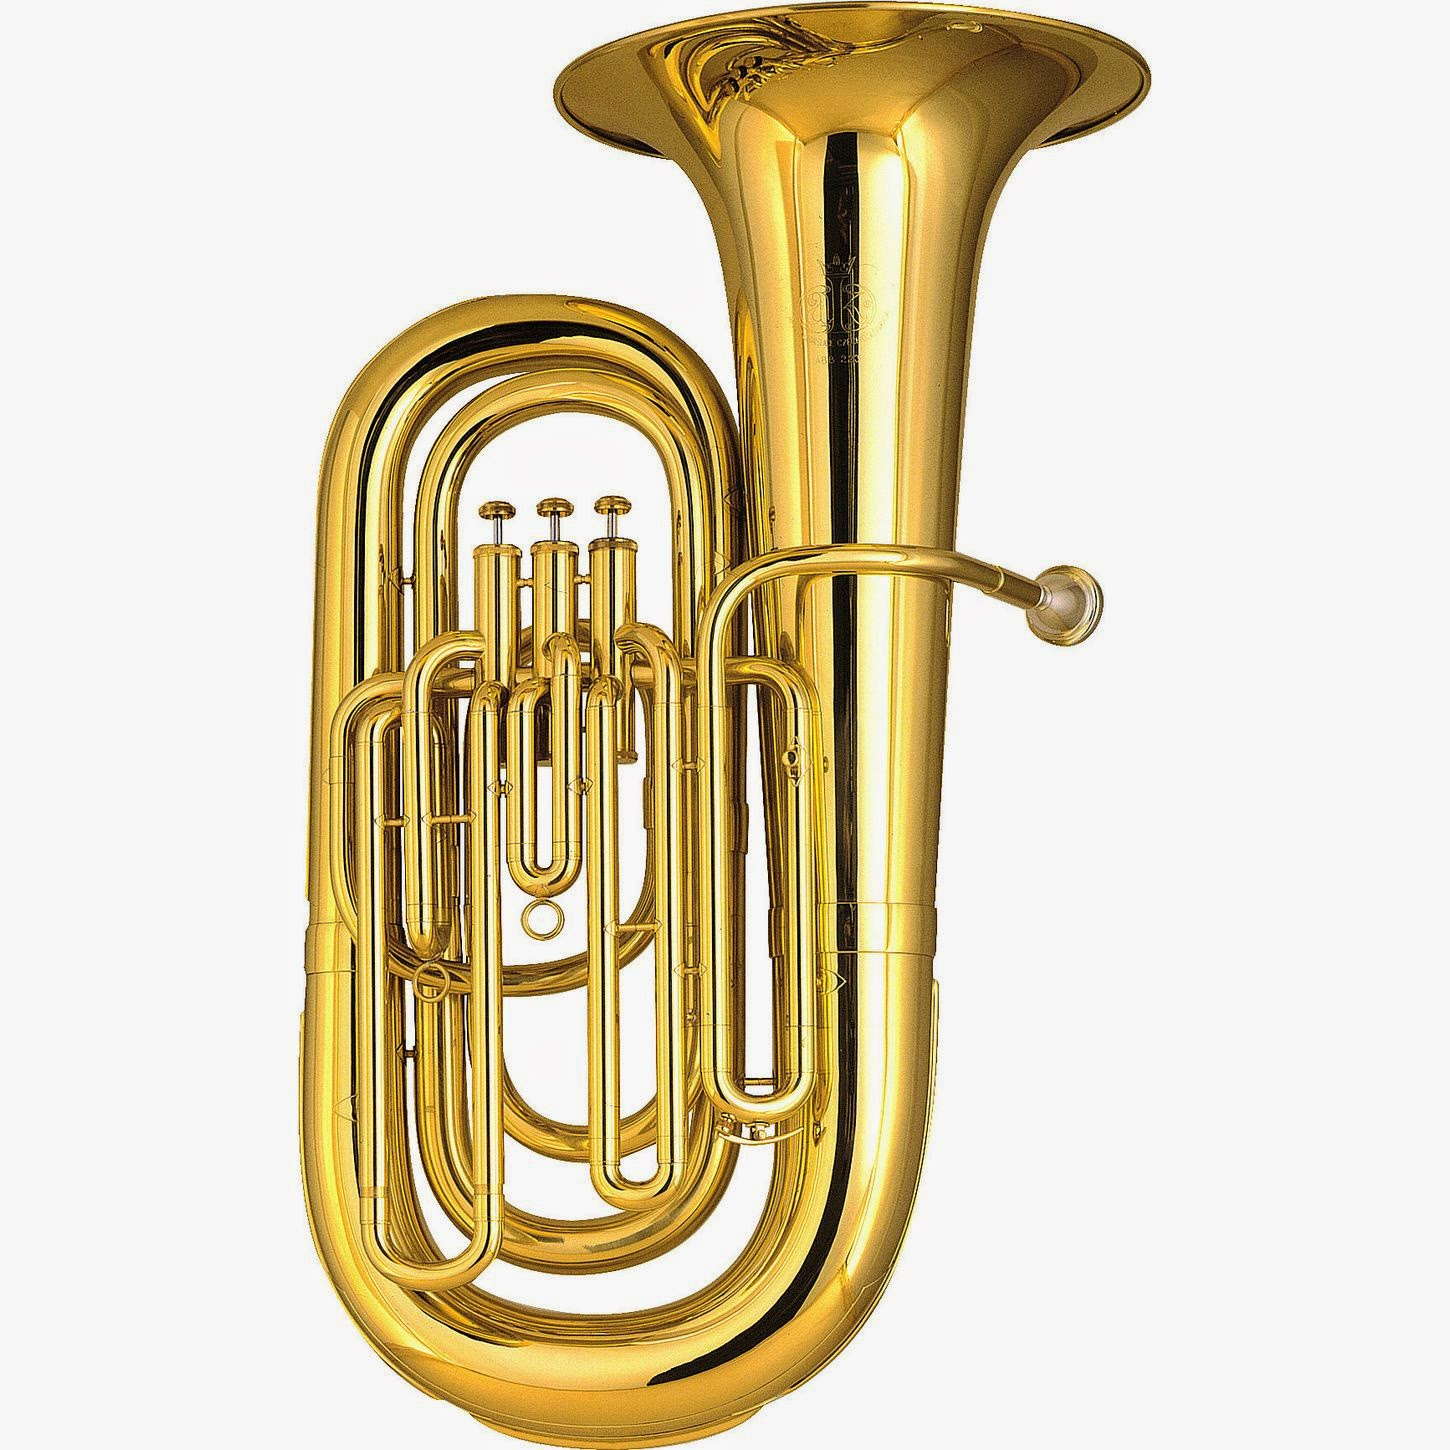 brass instrument Brass instrument cases trumpet cases french horn cases trombone cases   baritone/euphonium cases tuba cases flugelhorn cases cleaning.